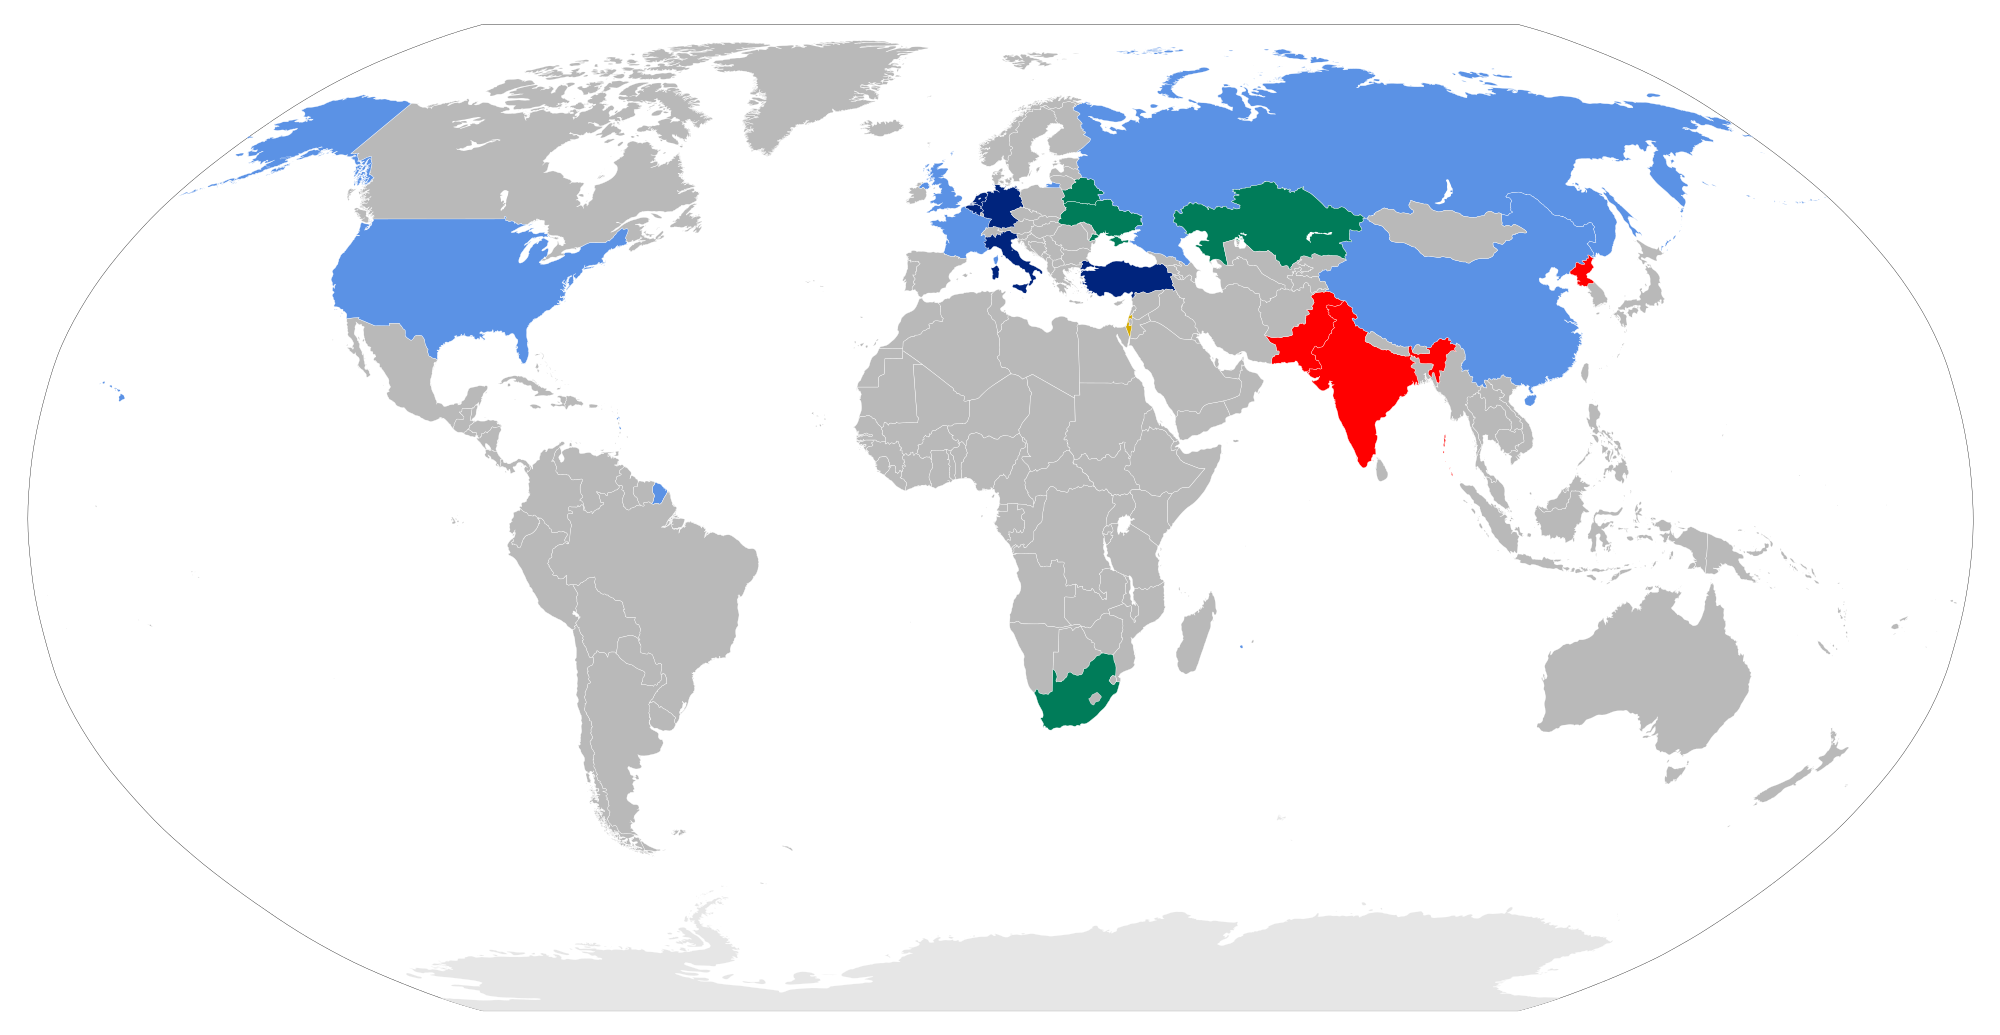 A_map_of_states_possessing_nuclear_weapons